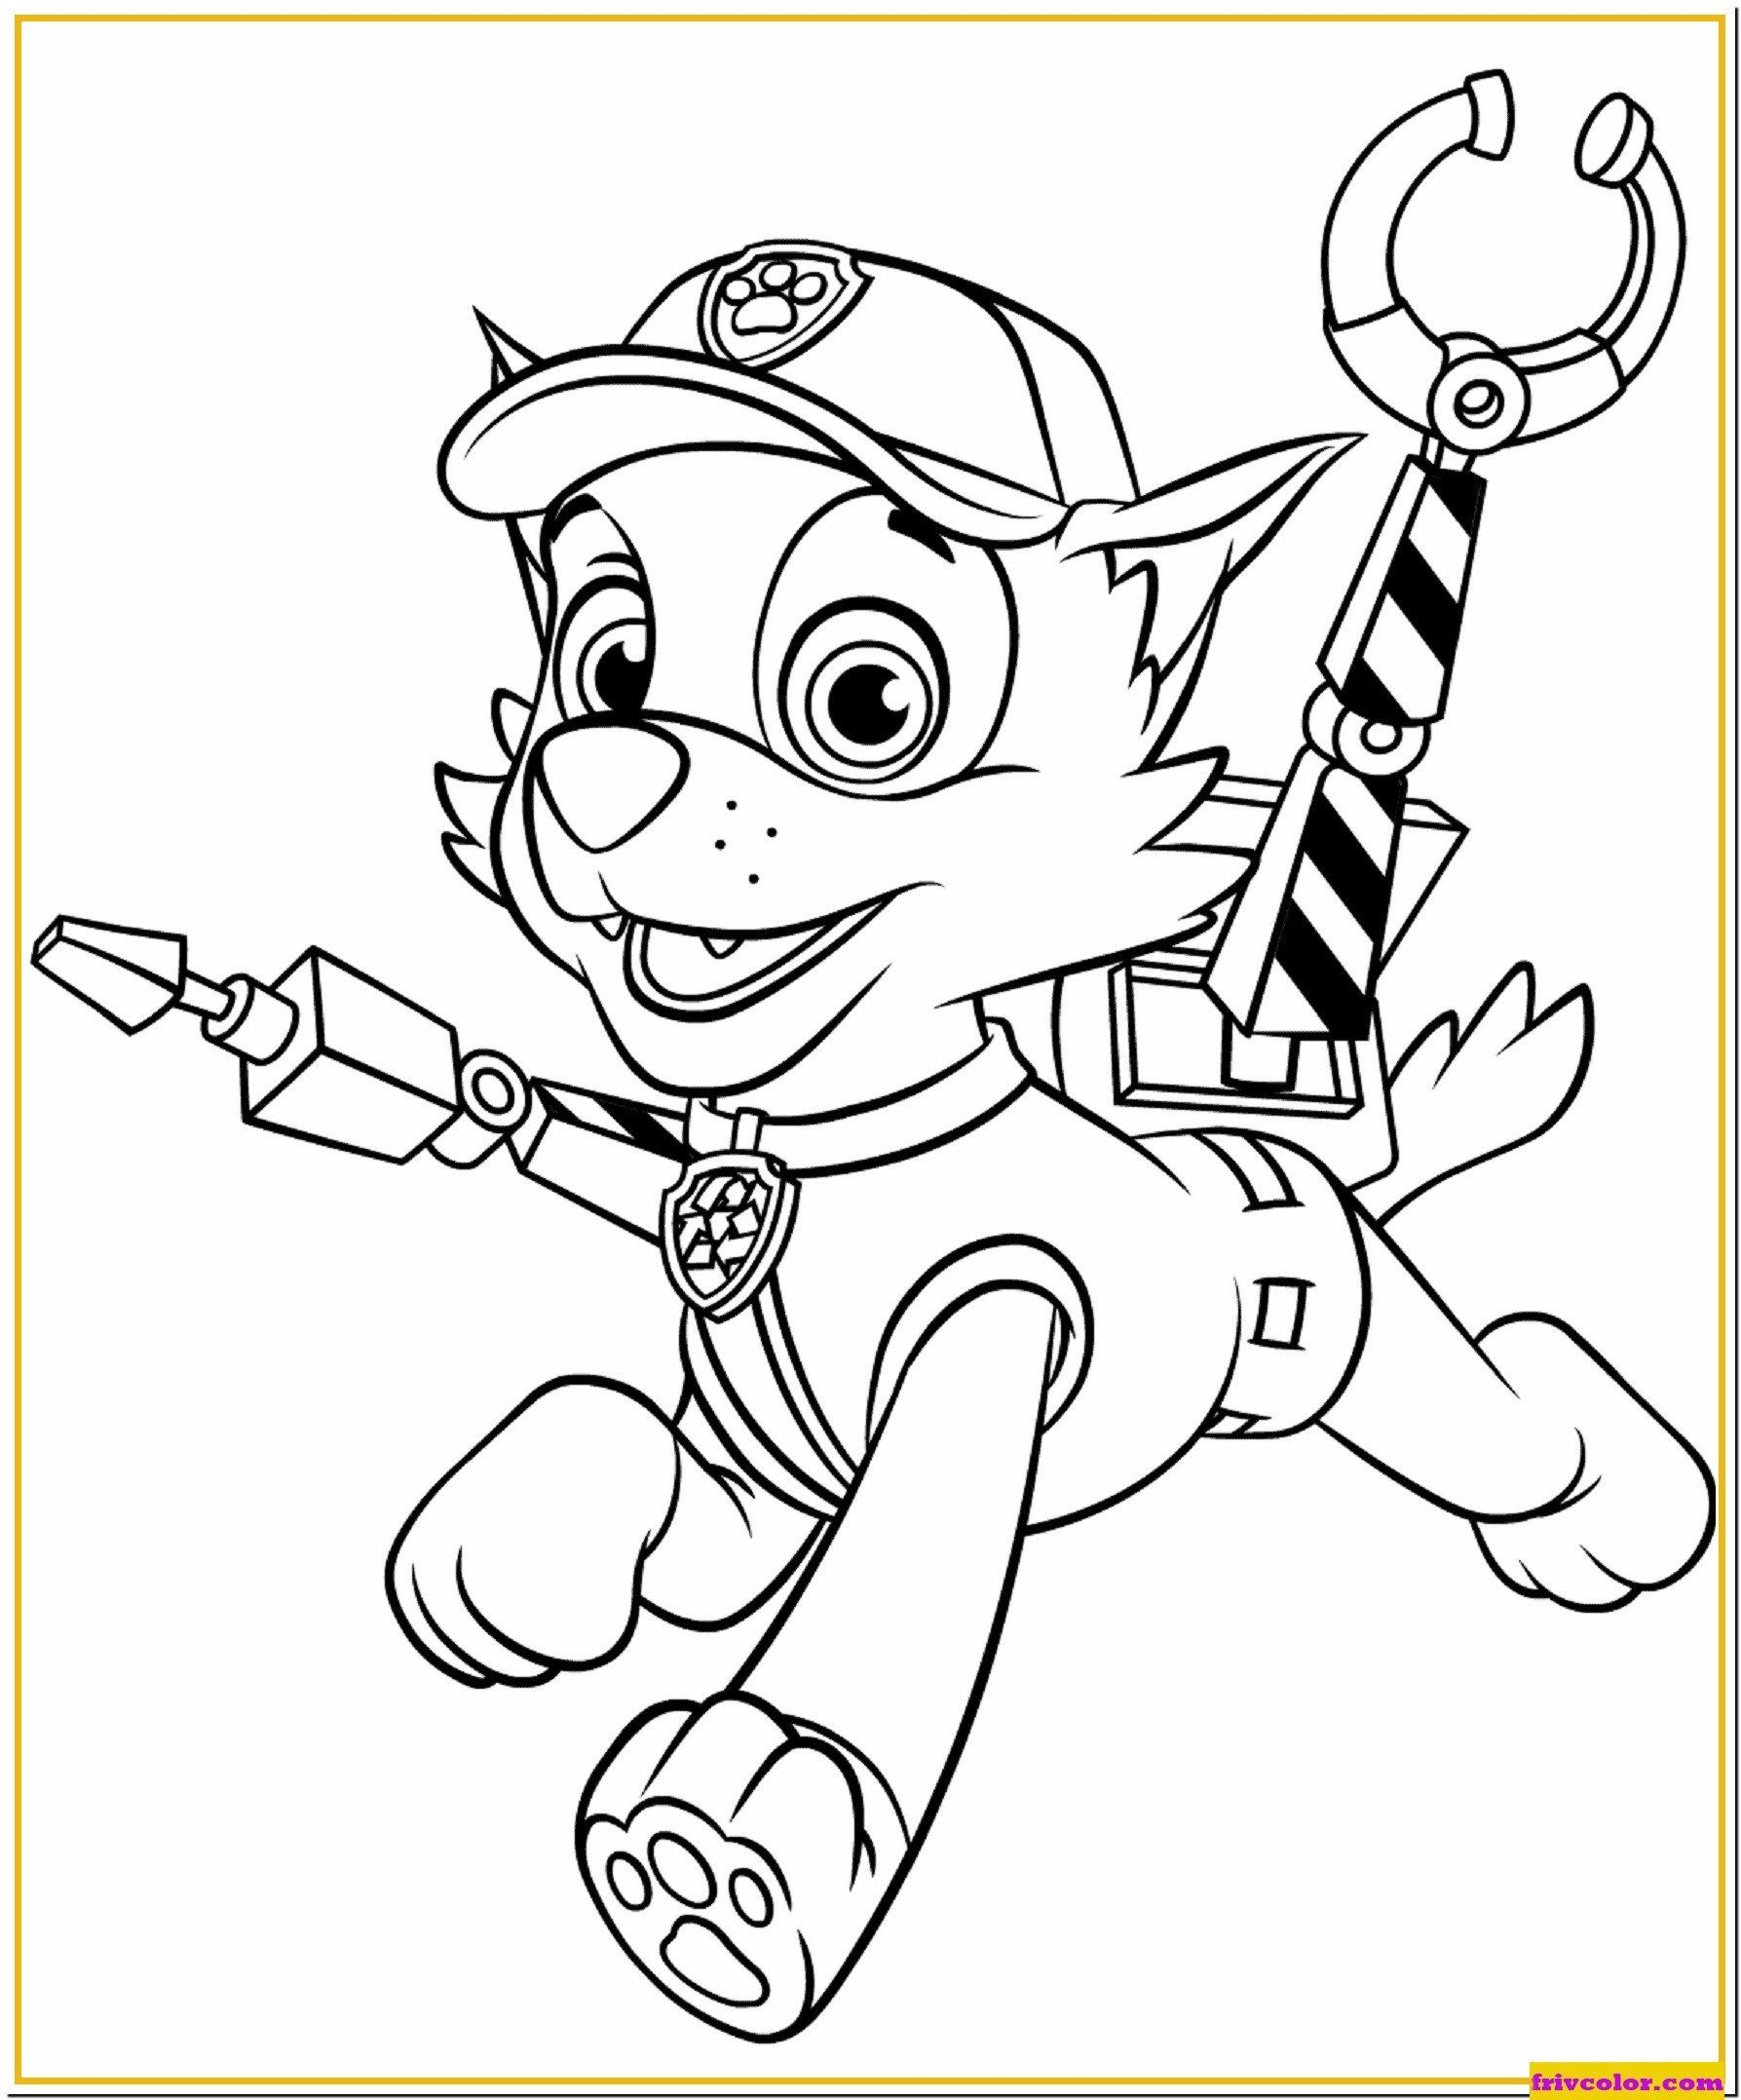 Paw Patrol Coloring Pages Rocky With Claws Paw Patrol Friv Free Coloring Pages For Paw Patrol Coloring Paw Patrol Coloring Pages Cartoon Coloring Pages